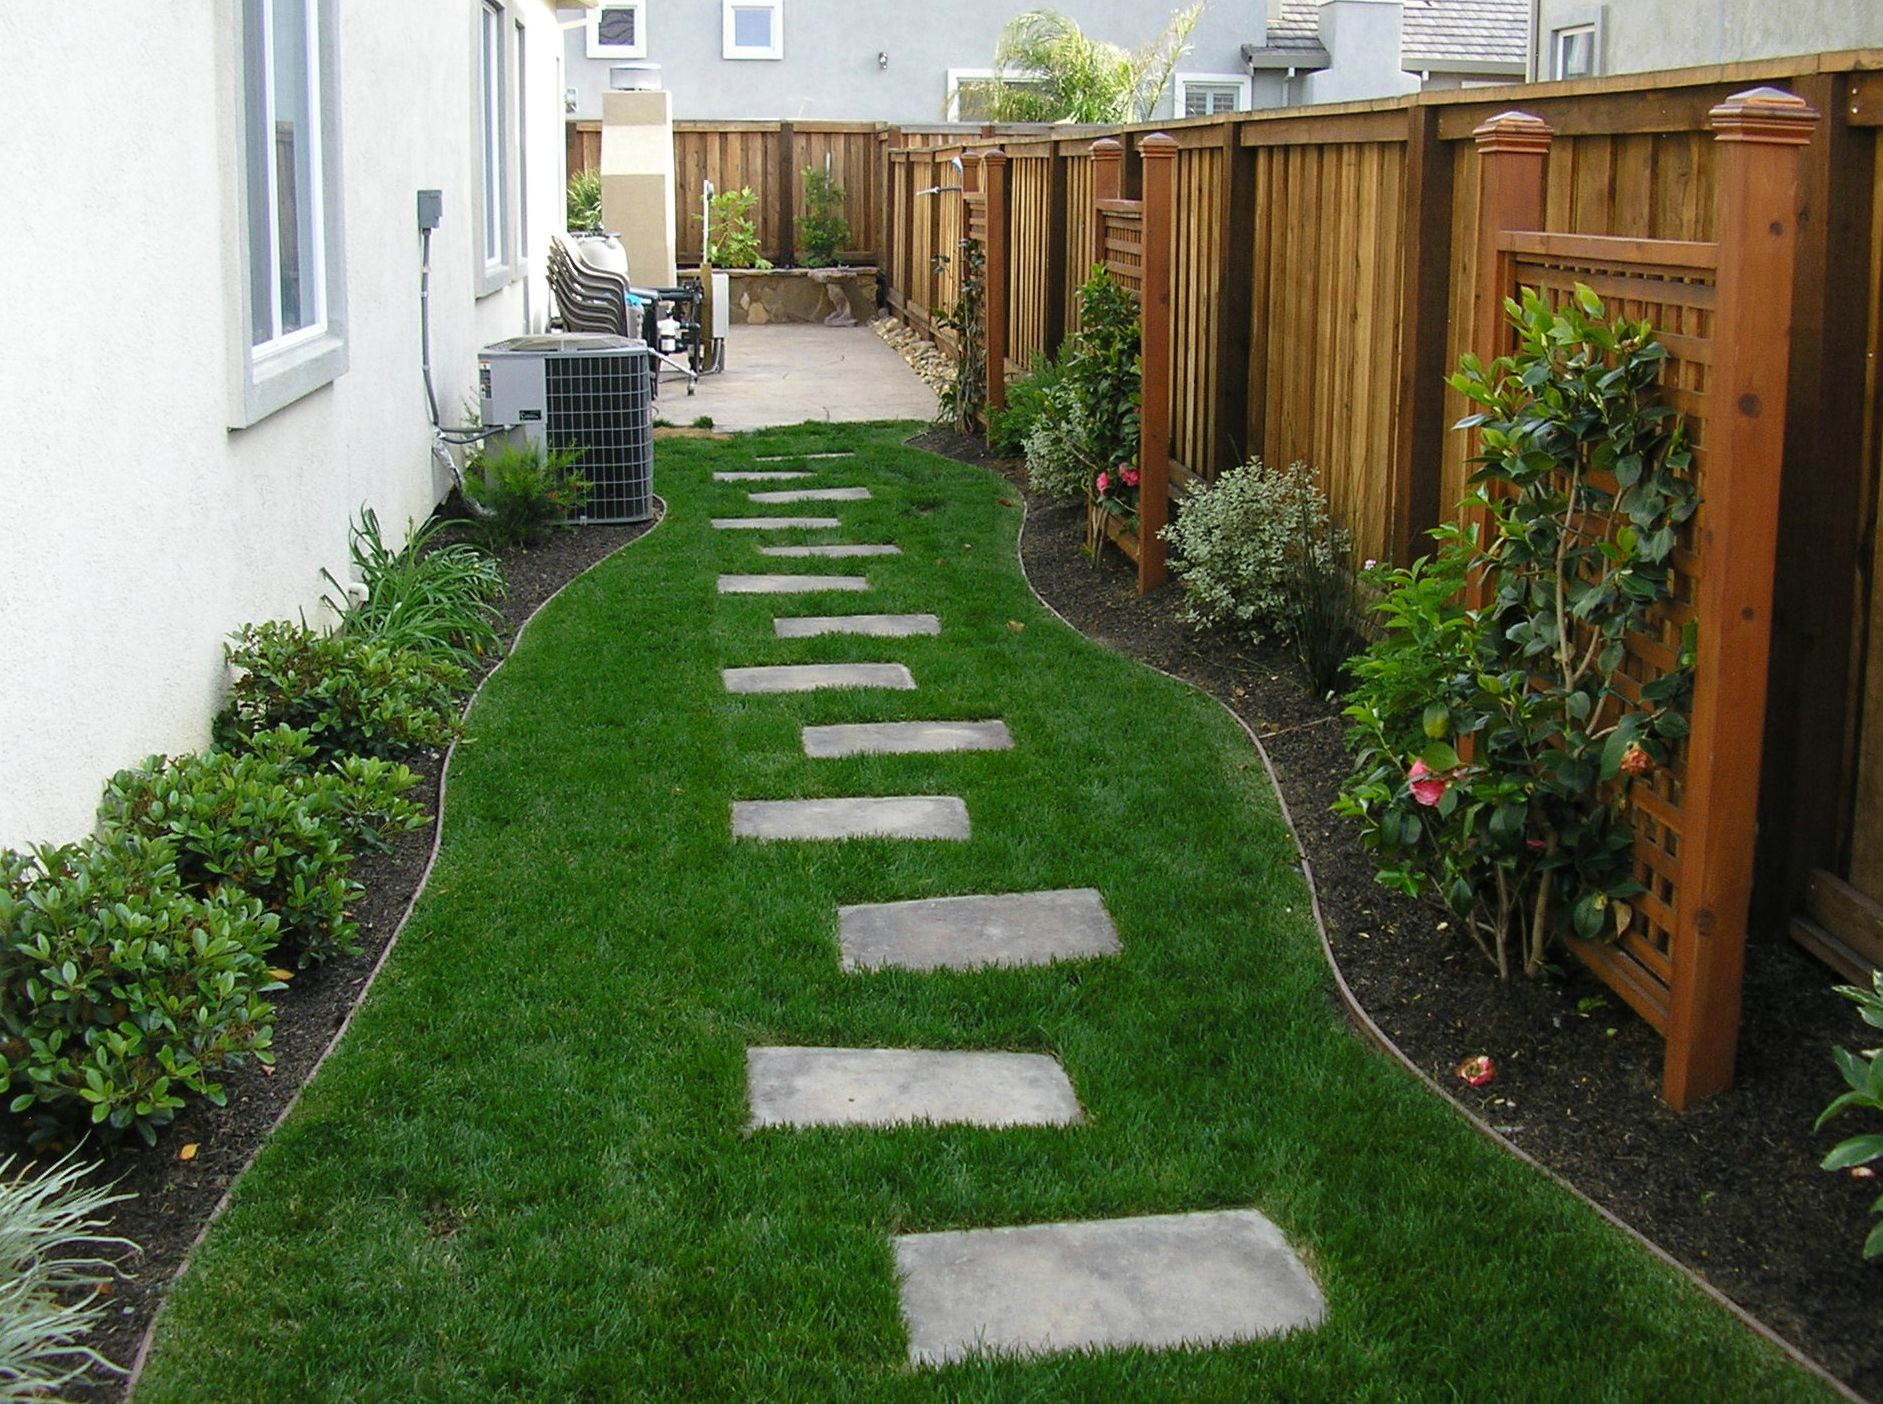 Dog Run Ideas I Like The Idea Of Pavers Going Through The Dog Run So I